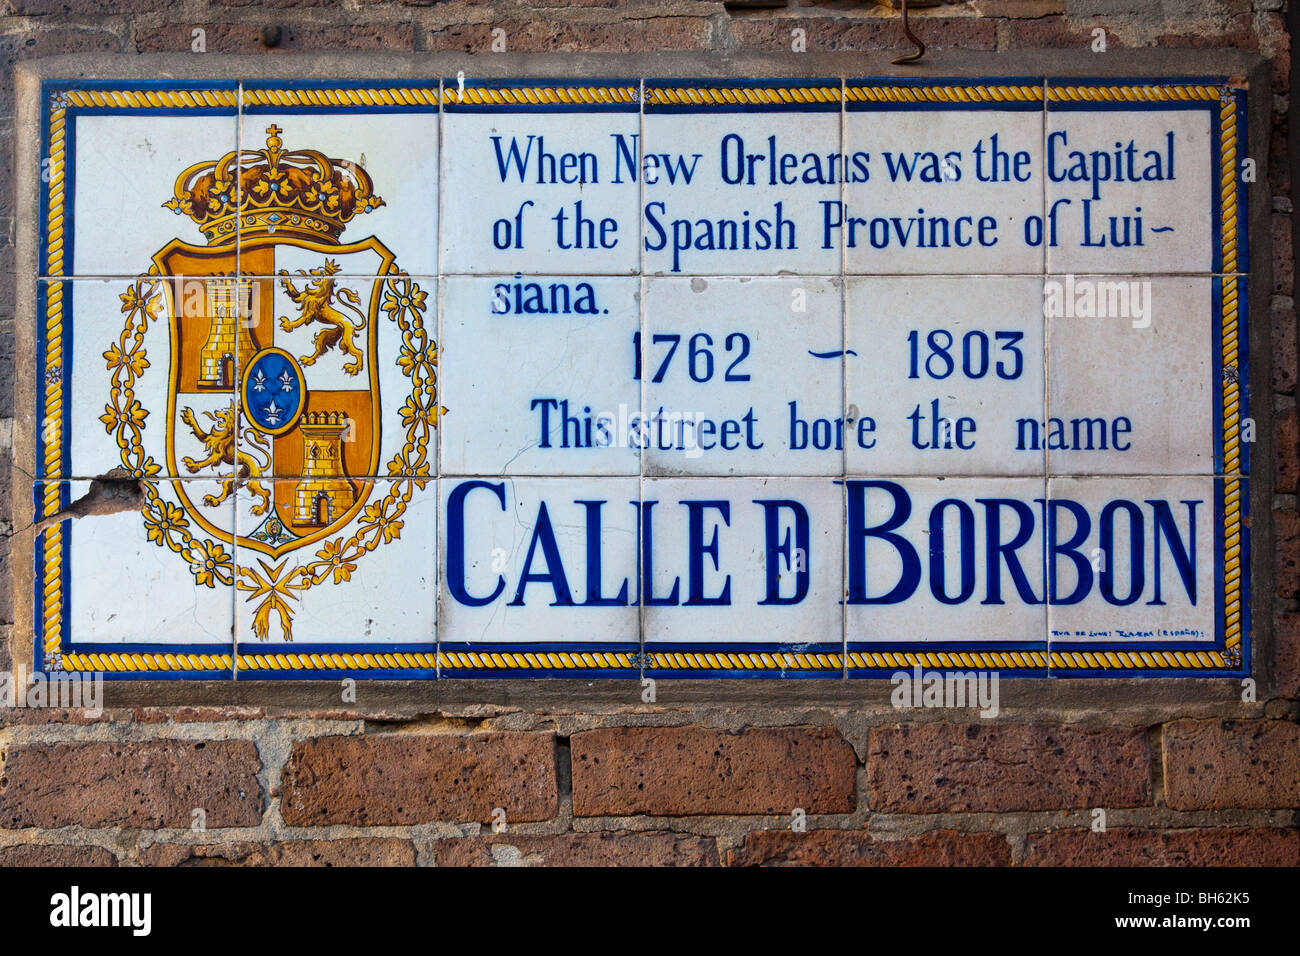 Calle d Borbon, Bourbon street sign in the French Quarter of New Orleans, LA - Stock Image